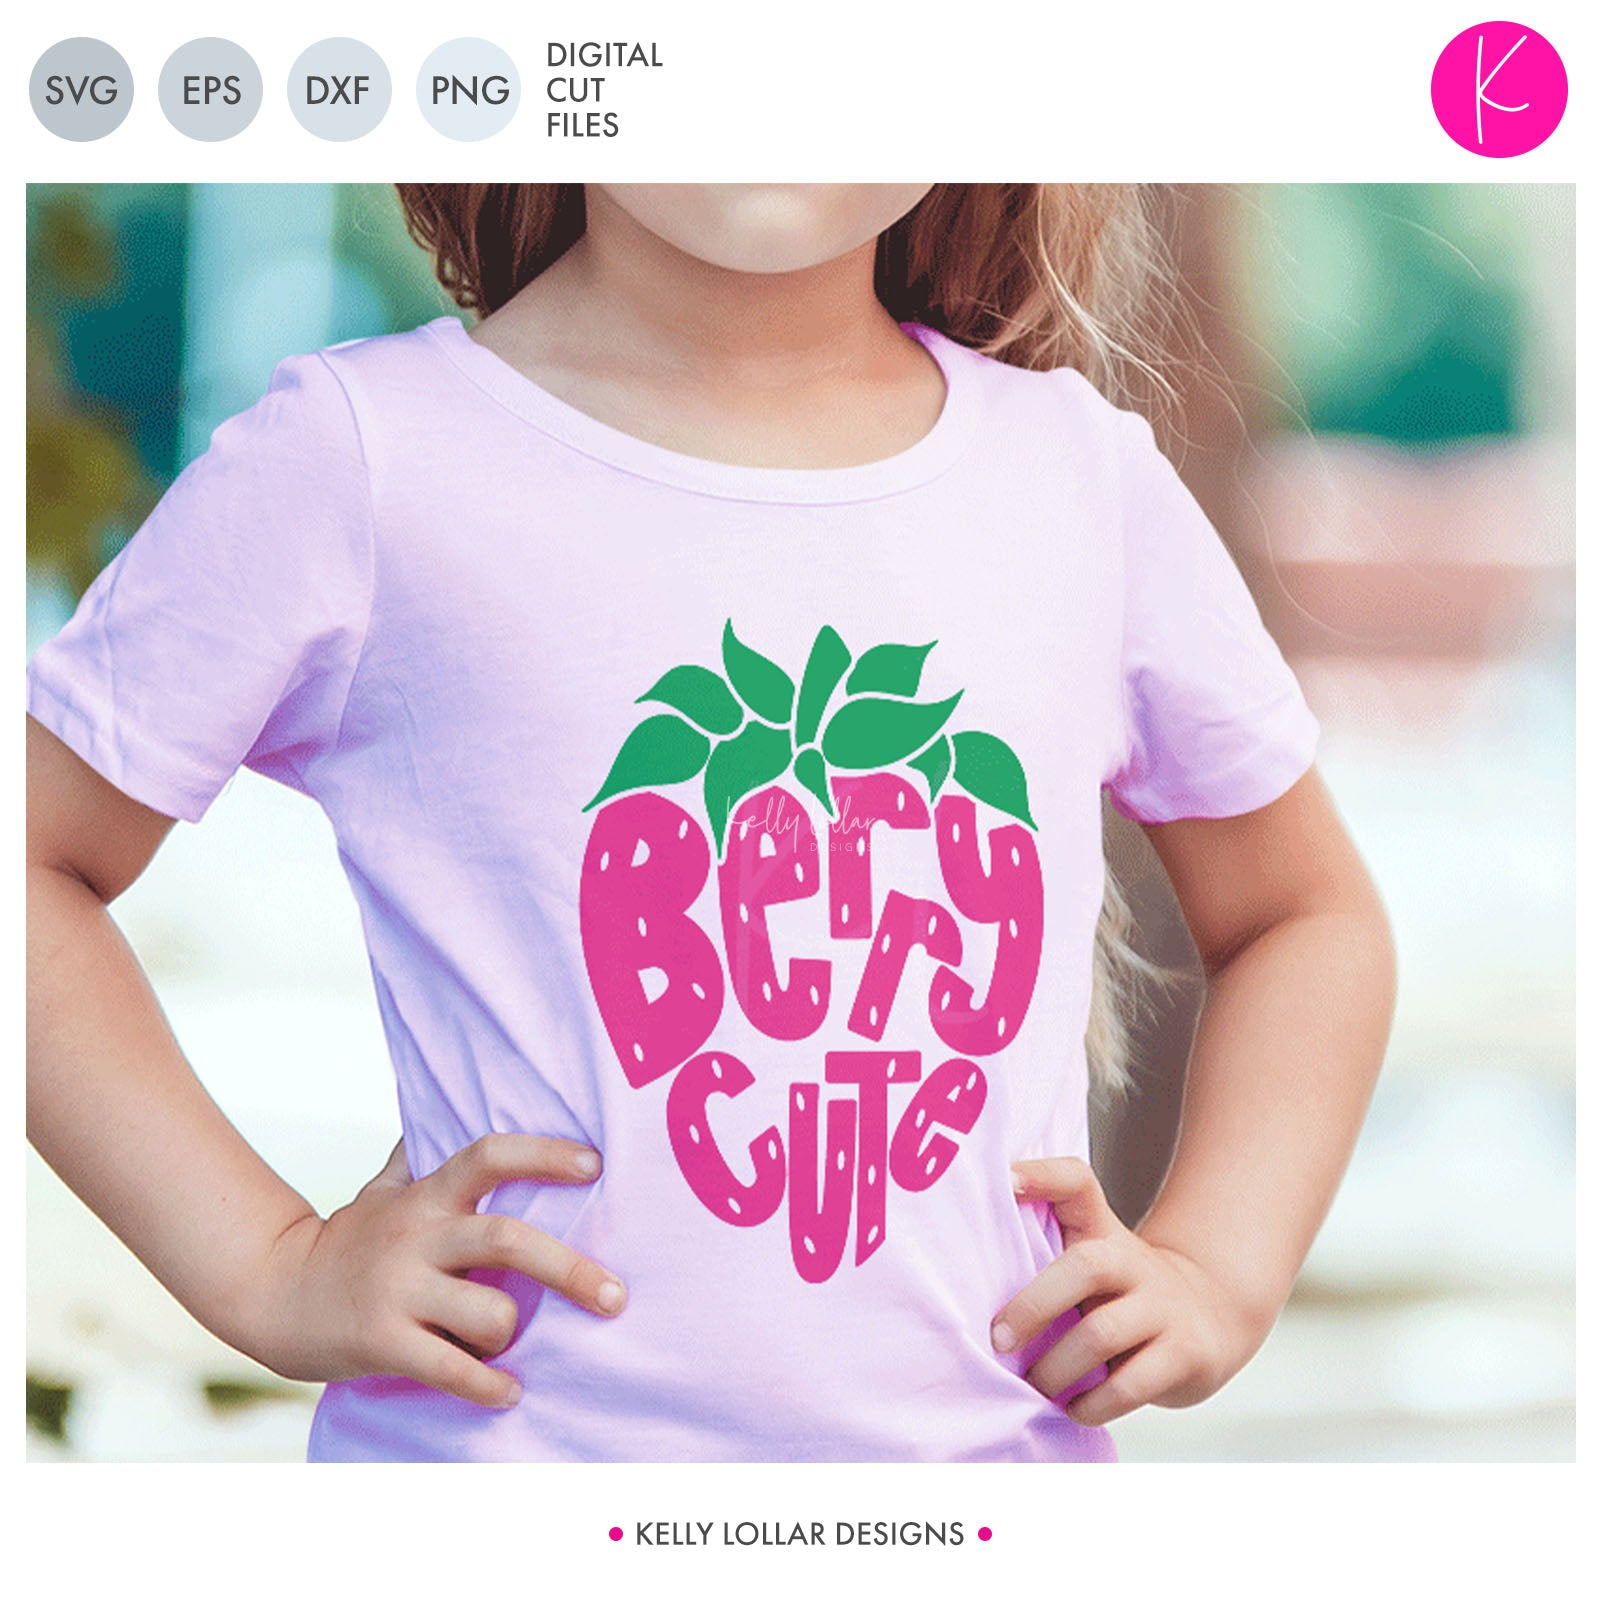 Berry Cute | SVG DXF EPS PNG Cut Files Strawberry with Hand Lettered Quote for the Fruit and Knockouts for the Seeds | SVG DXF PNG Cut Files  Your little one will love her new berry cute svg shirt as